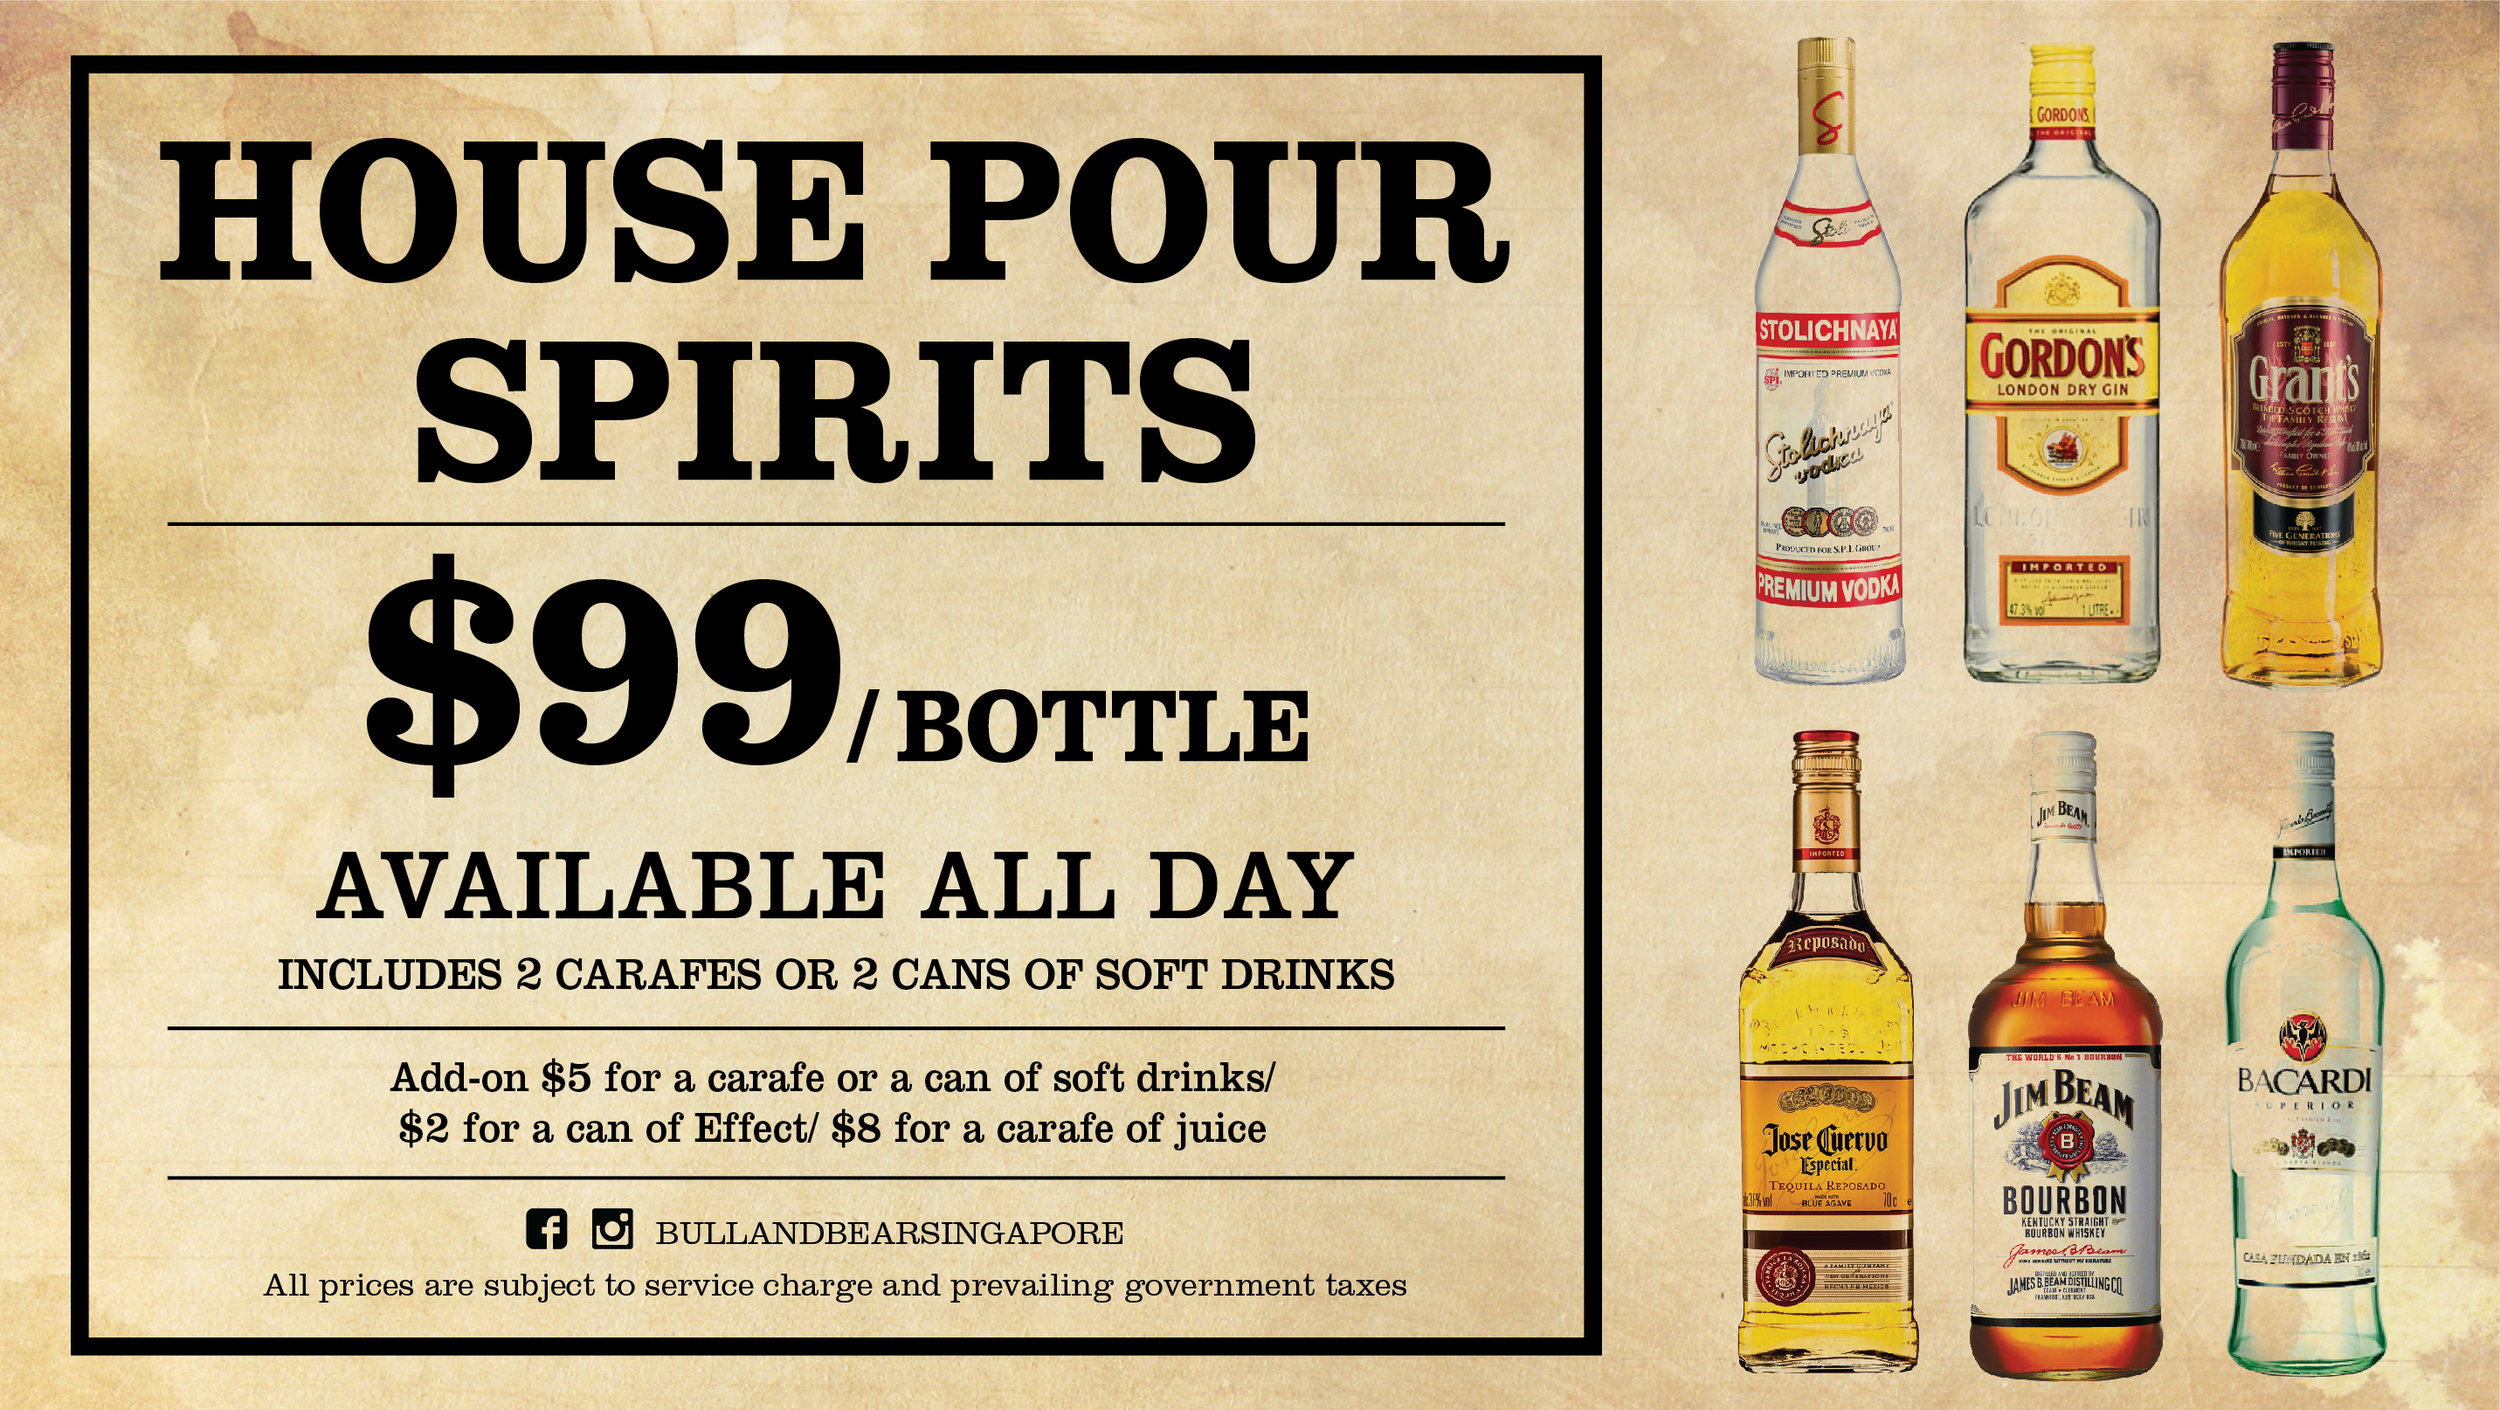 Bottles of House Pour Spirits